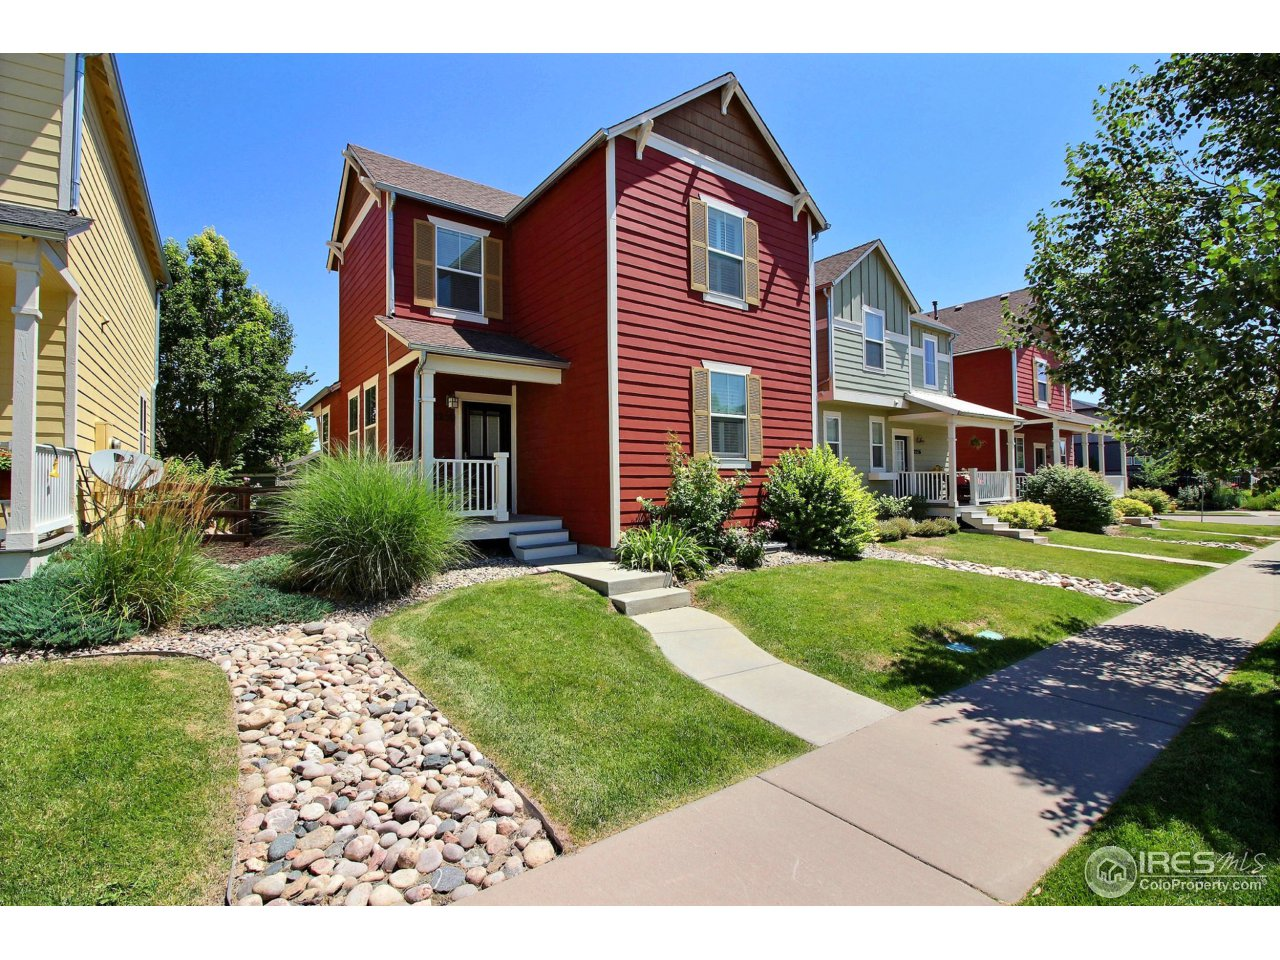 2250 Trestle Rd, Fort Collins CO 80525